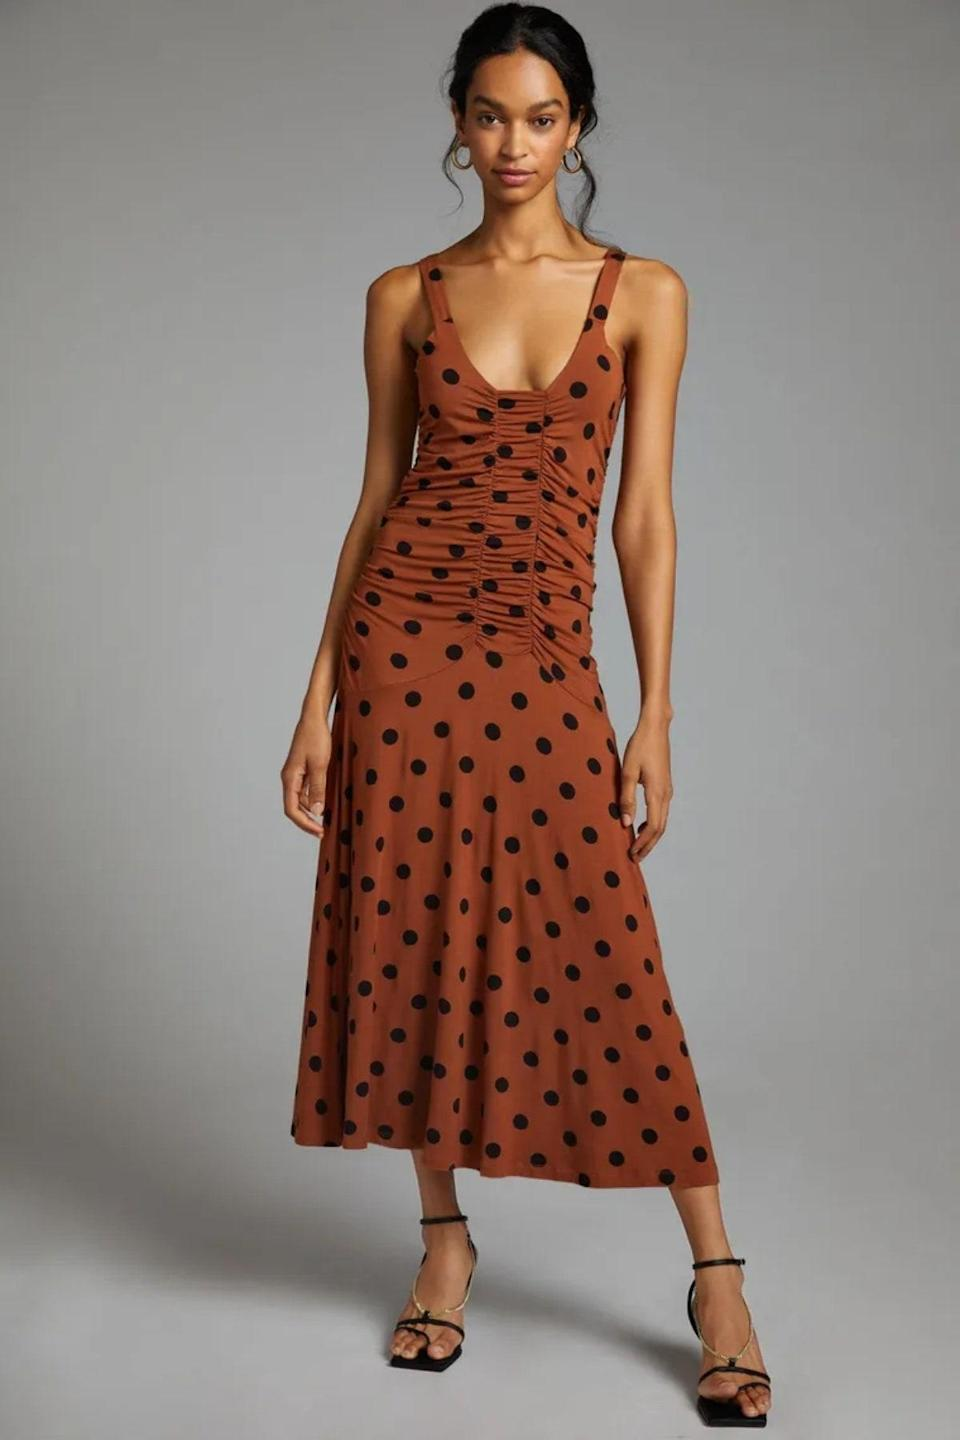 """If your personal style leans casual, try this ruched polka-dot number, which comes in straight, petite, and plus sizes. With the right accessories, you can easily dress it up depending on where the wedding invitation takes you. $160, Anthropologie. <a href=""""https://www.anthropologie.com/shop/maeve-ruched-midi-dress?color=029&type=STANDARD&quantity=1"""" rel=""""nofollow noopener"""" target=""""_blank"""" data-ylk=""""slk:Get it now!"""" class=""""link rapid-noclick-resp"""">Get it now!</a>"""